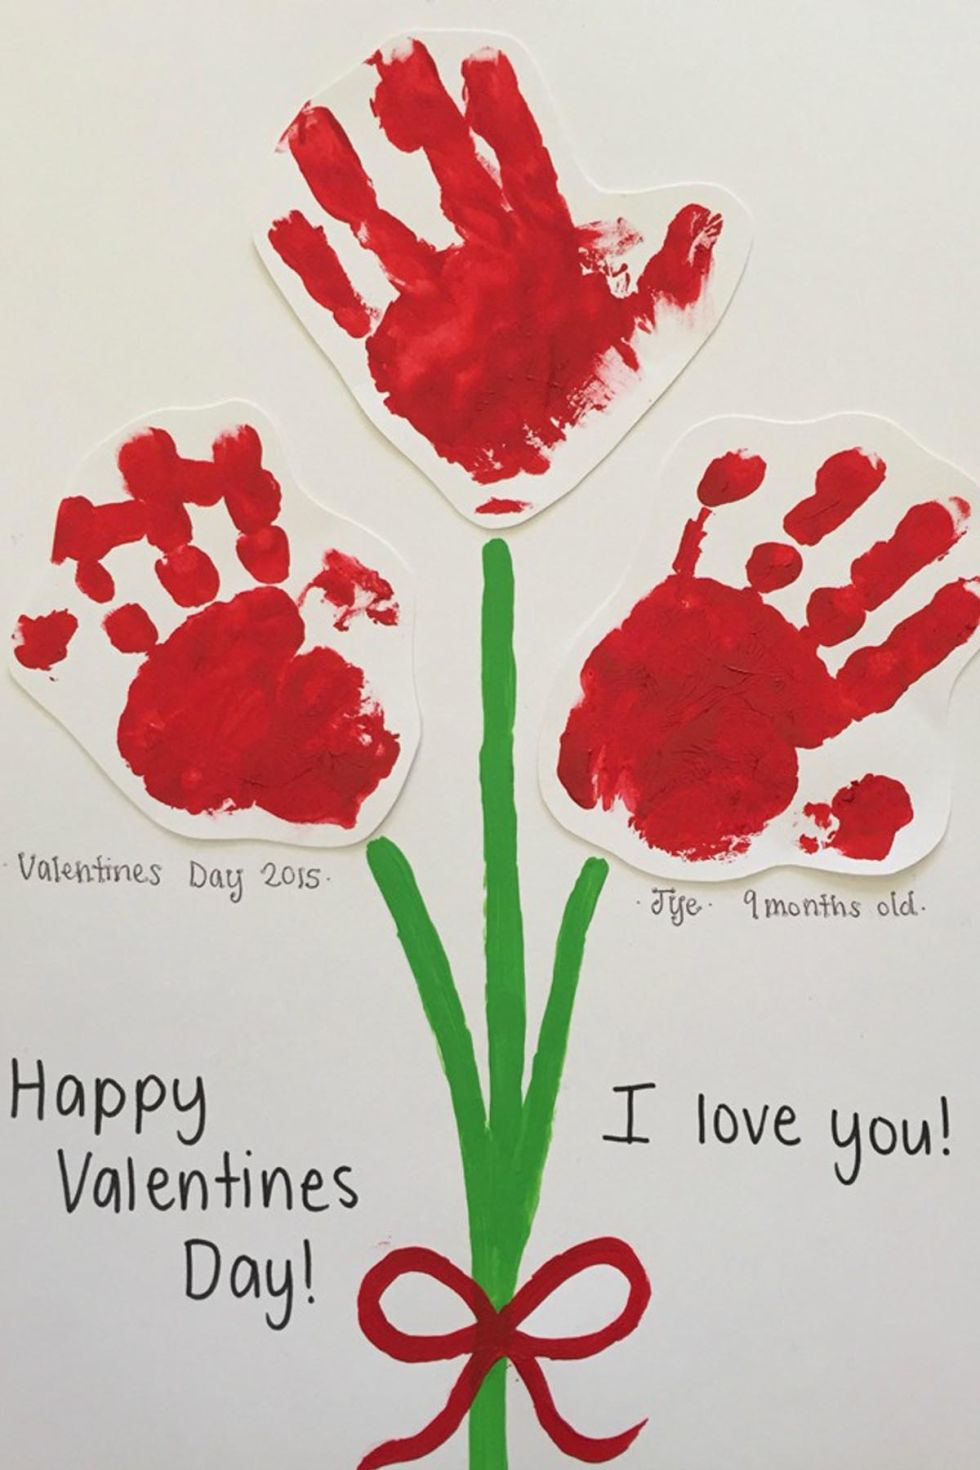 22 valentines day crafts for kids fun heart arts and crafts projects for toddlers and kids - Valentine Day Crafts For Kids